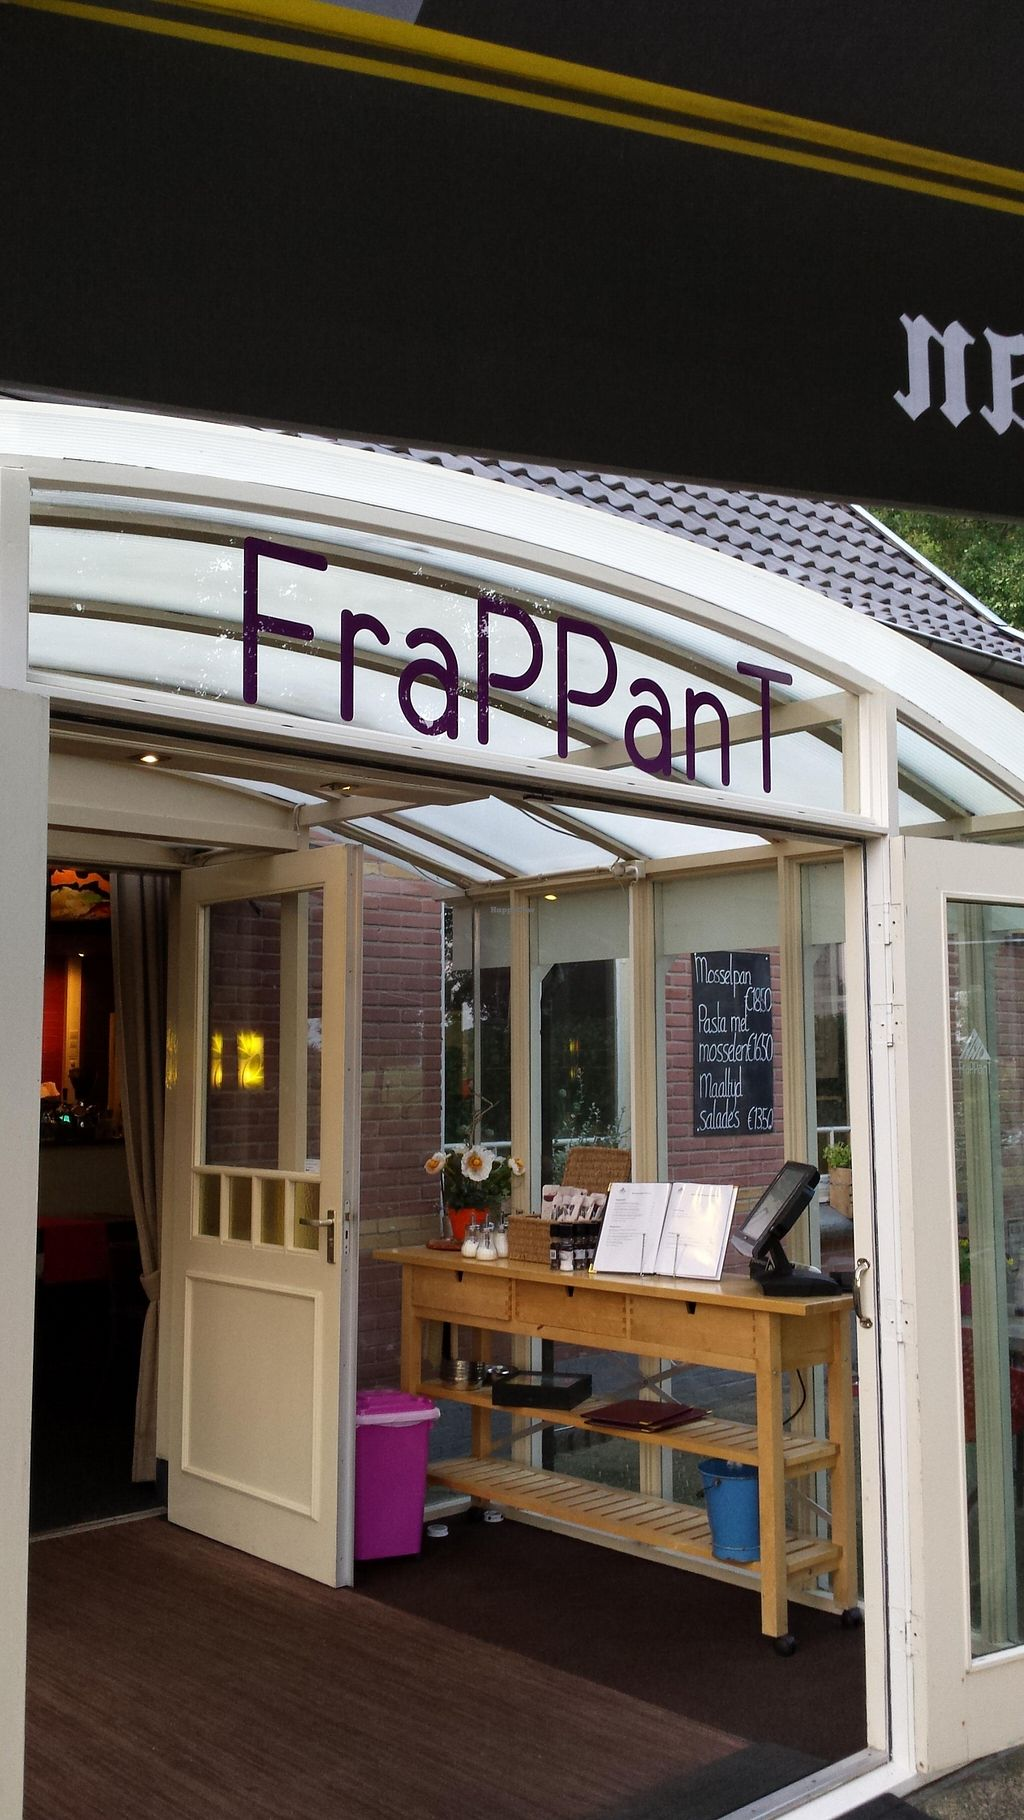 """Photo of FraPPanT  by <a href=""""/members/profile/Yilla"""">Yilla</a> <br/>Entrance  <br/> September 12, 2015  - <a href='/contact/abuse/image/63282/117448'>Report</a>"""